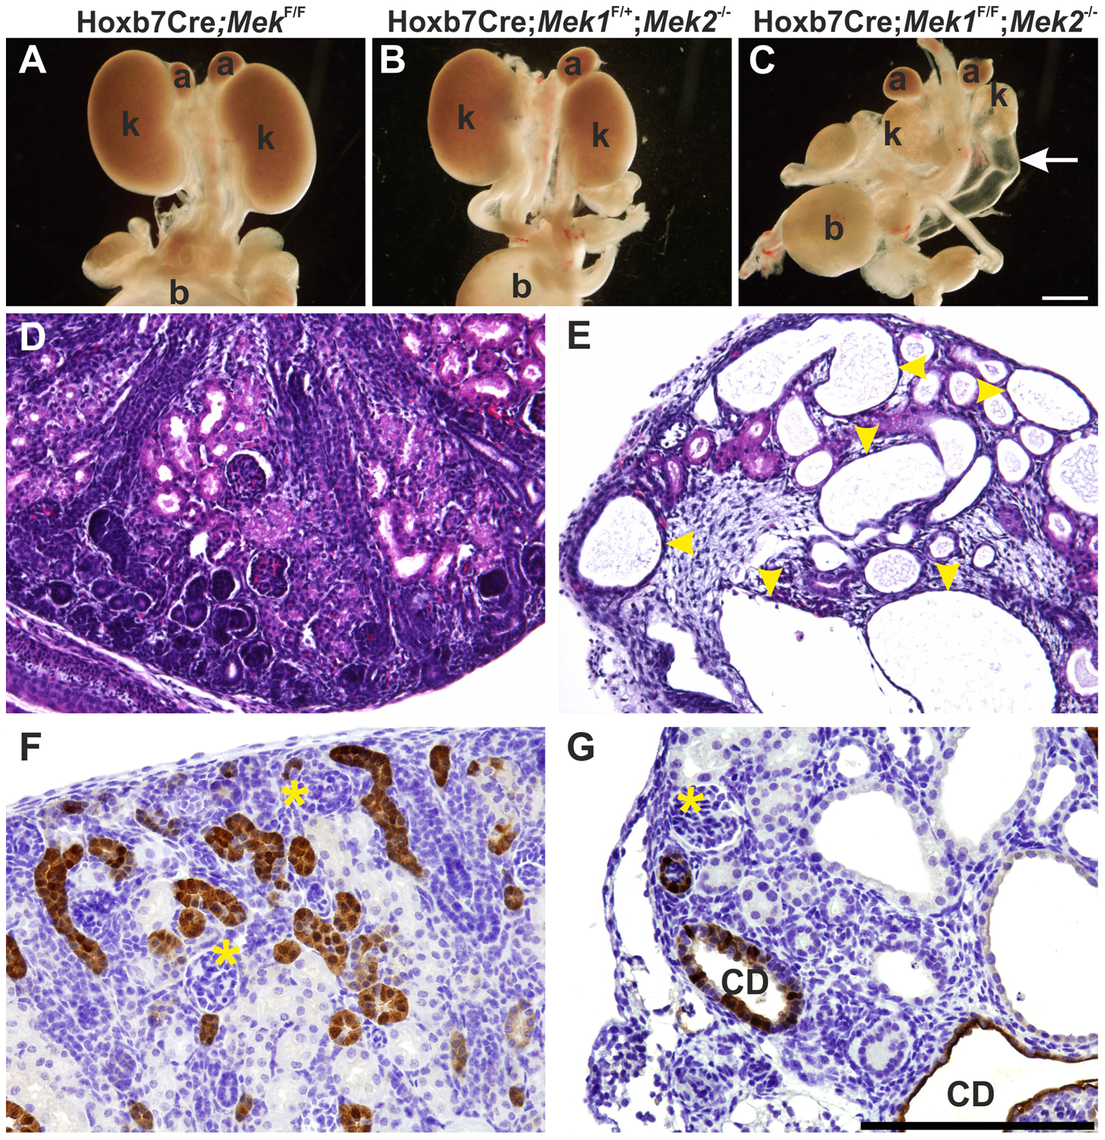 Genetic ablation of MAPK pathway specifically in ureteric bud epithelium results in severe renal hypodysplasia.